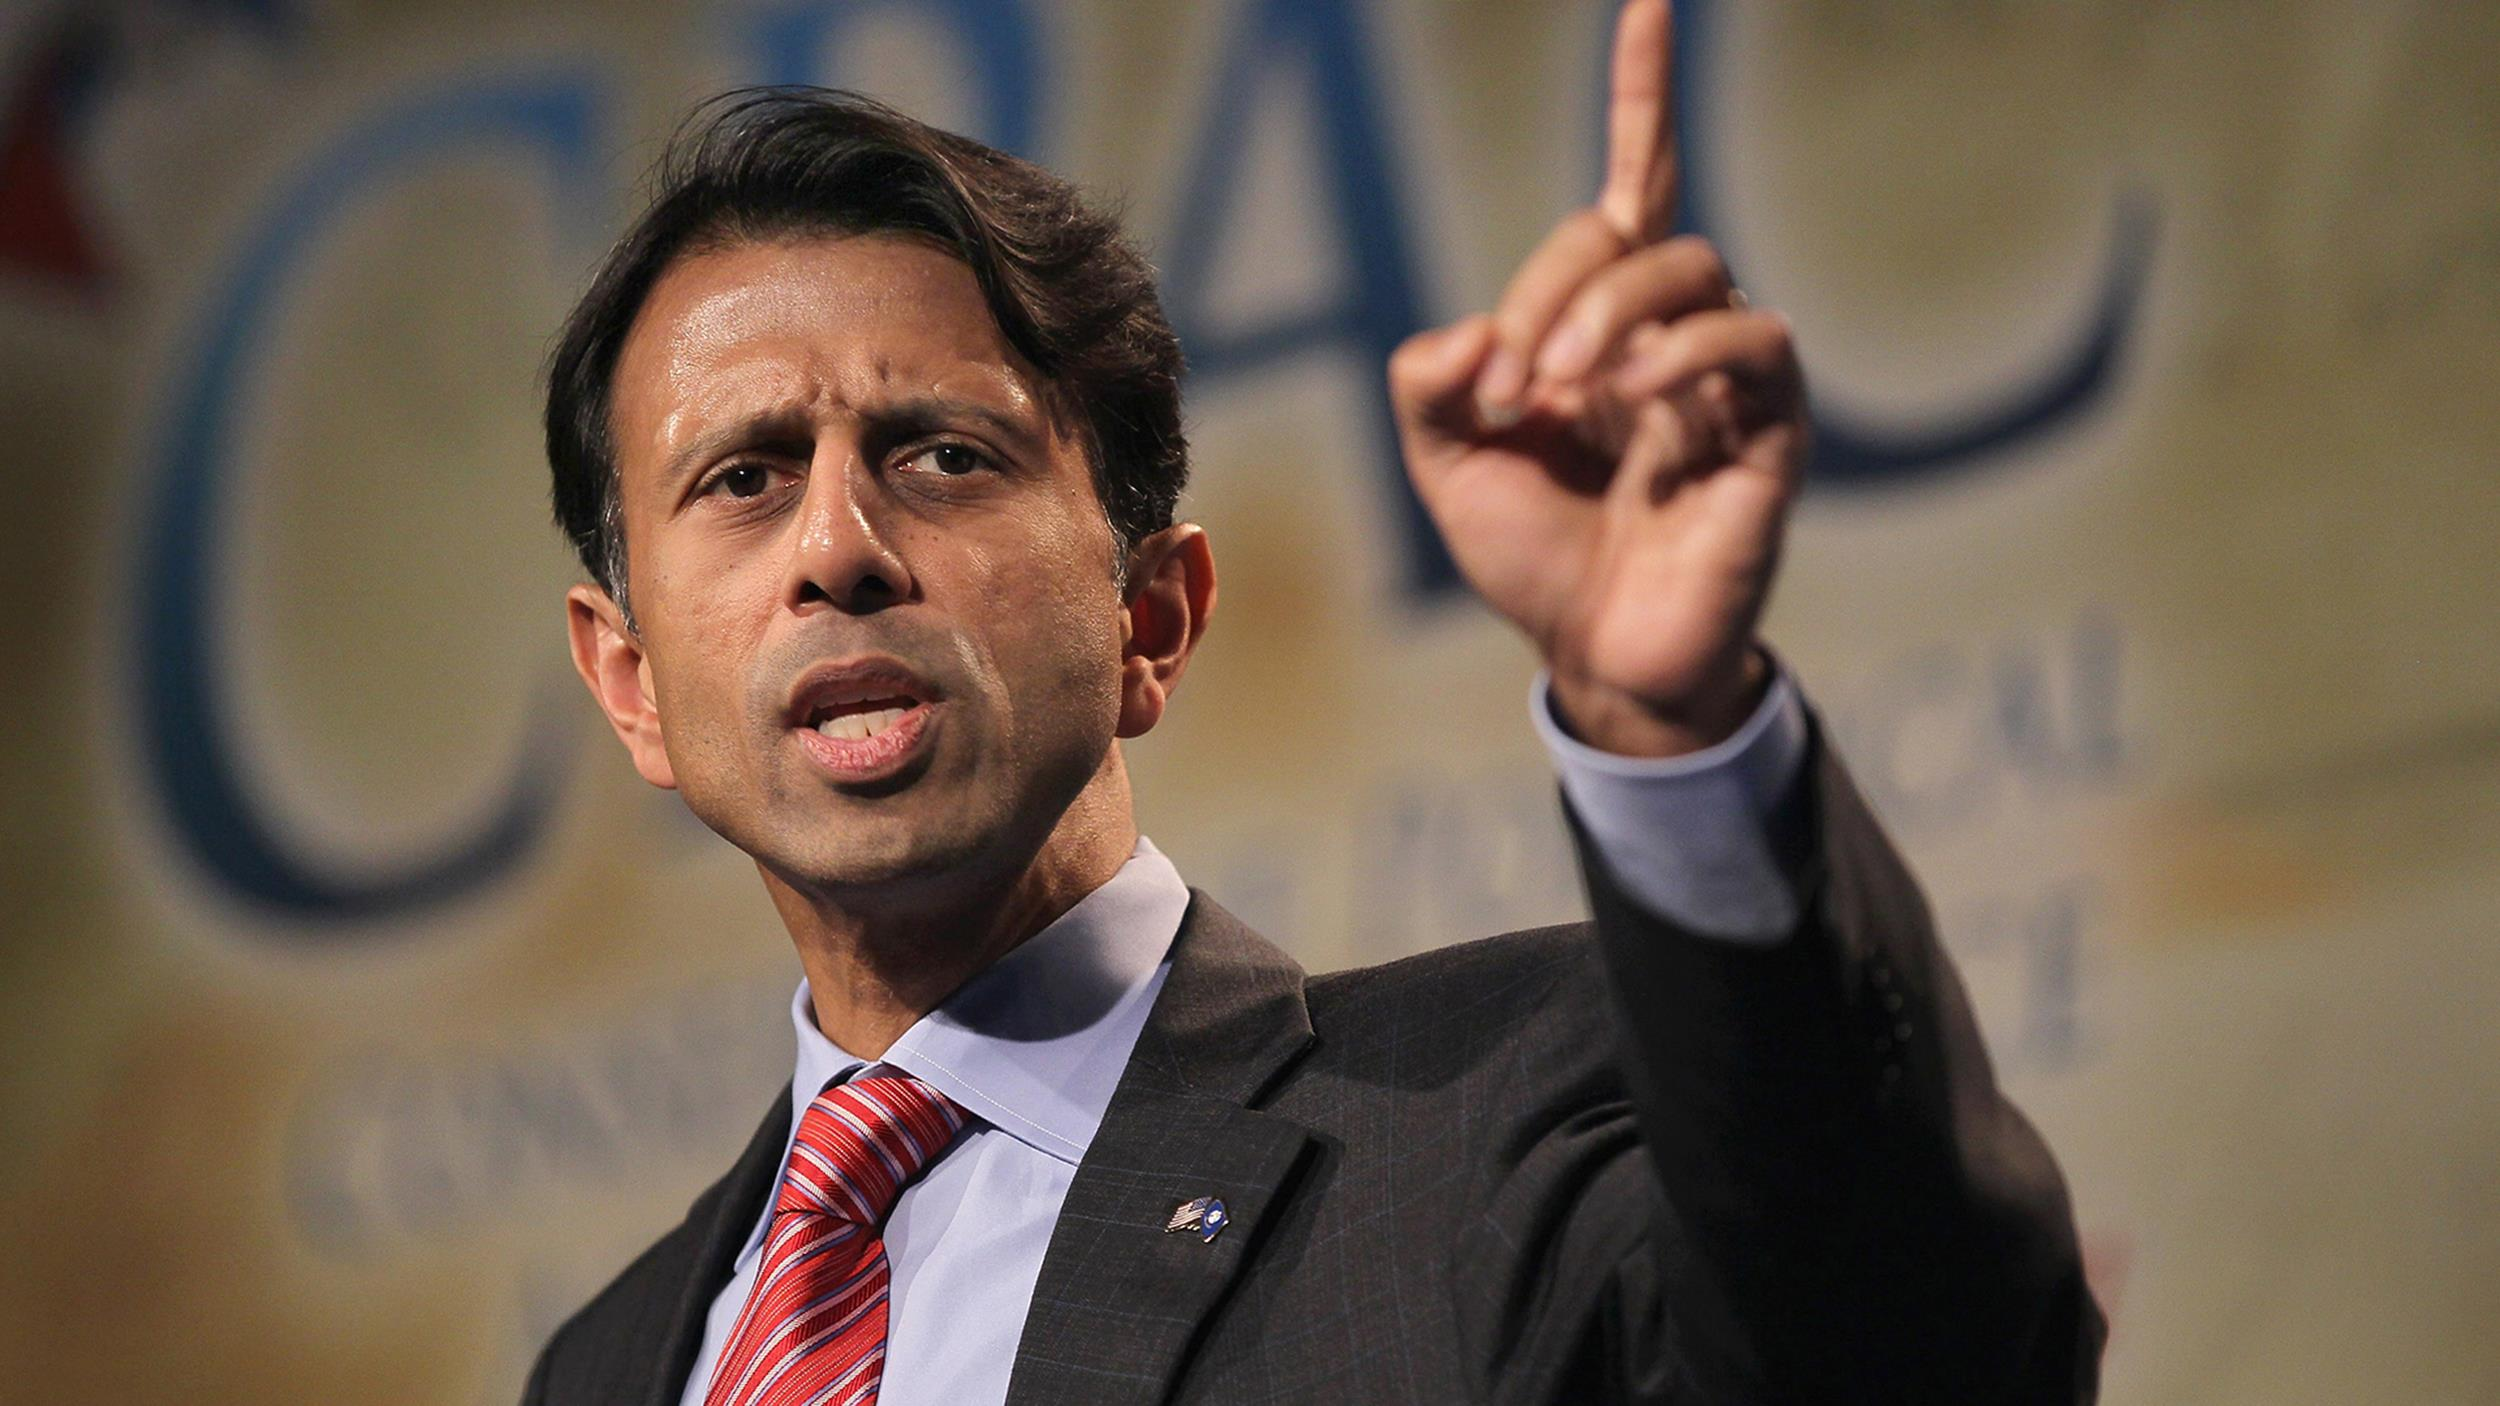 Bobby Jindal Speaking